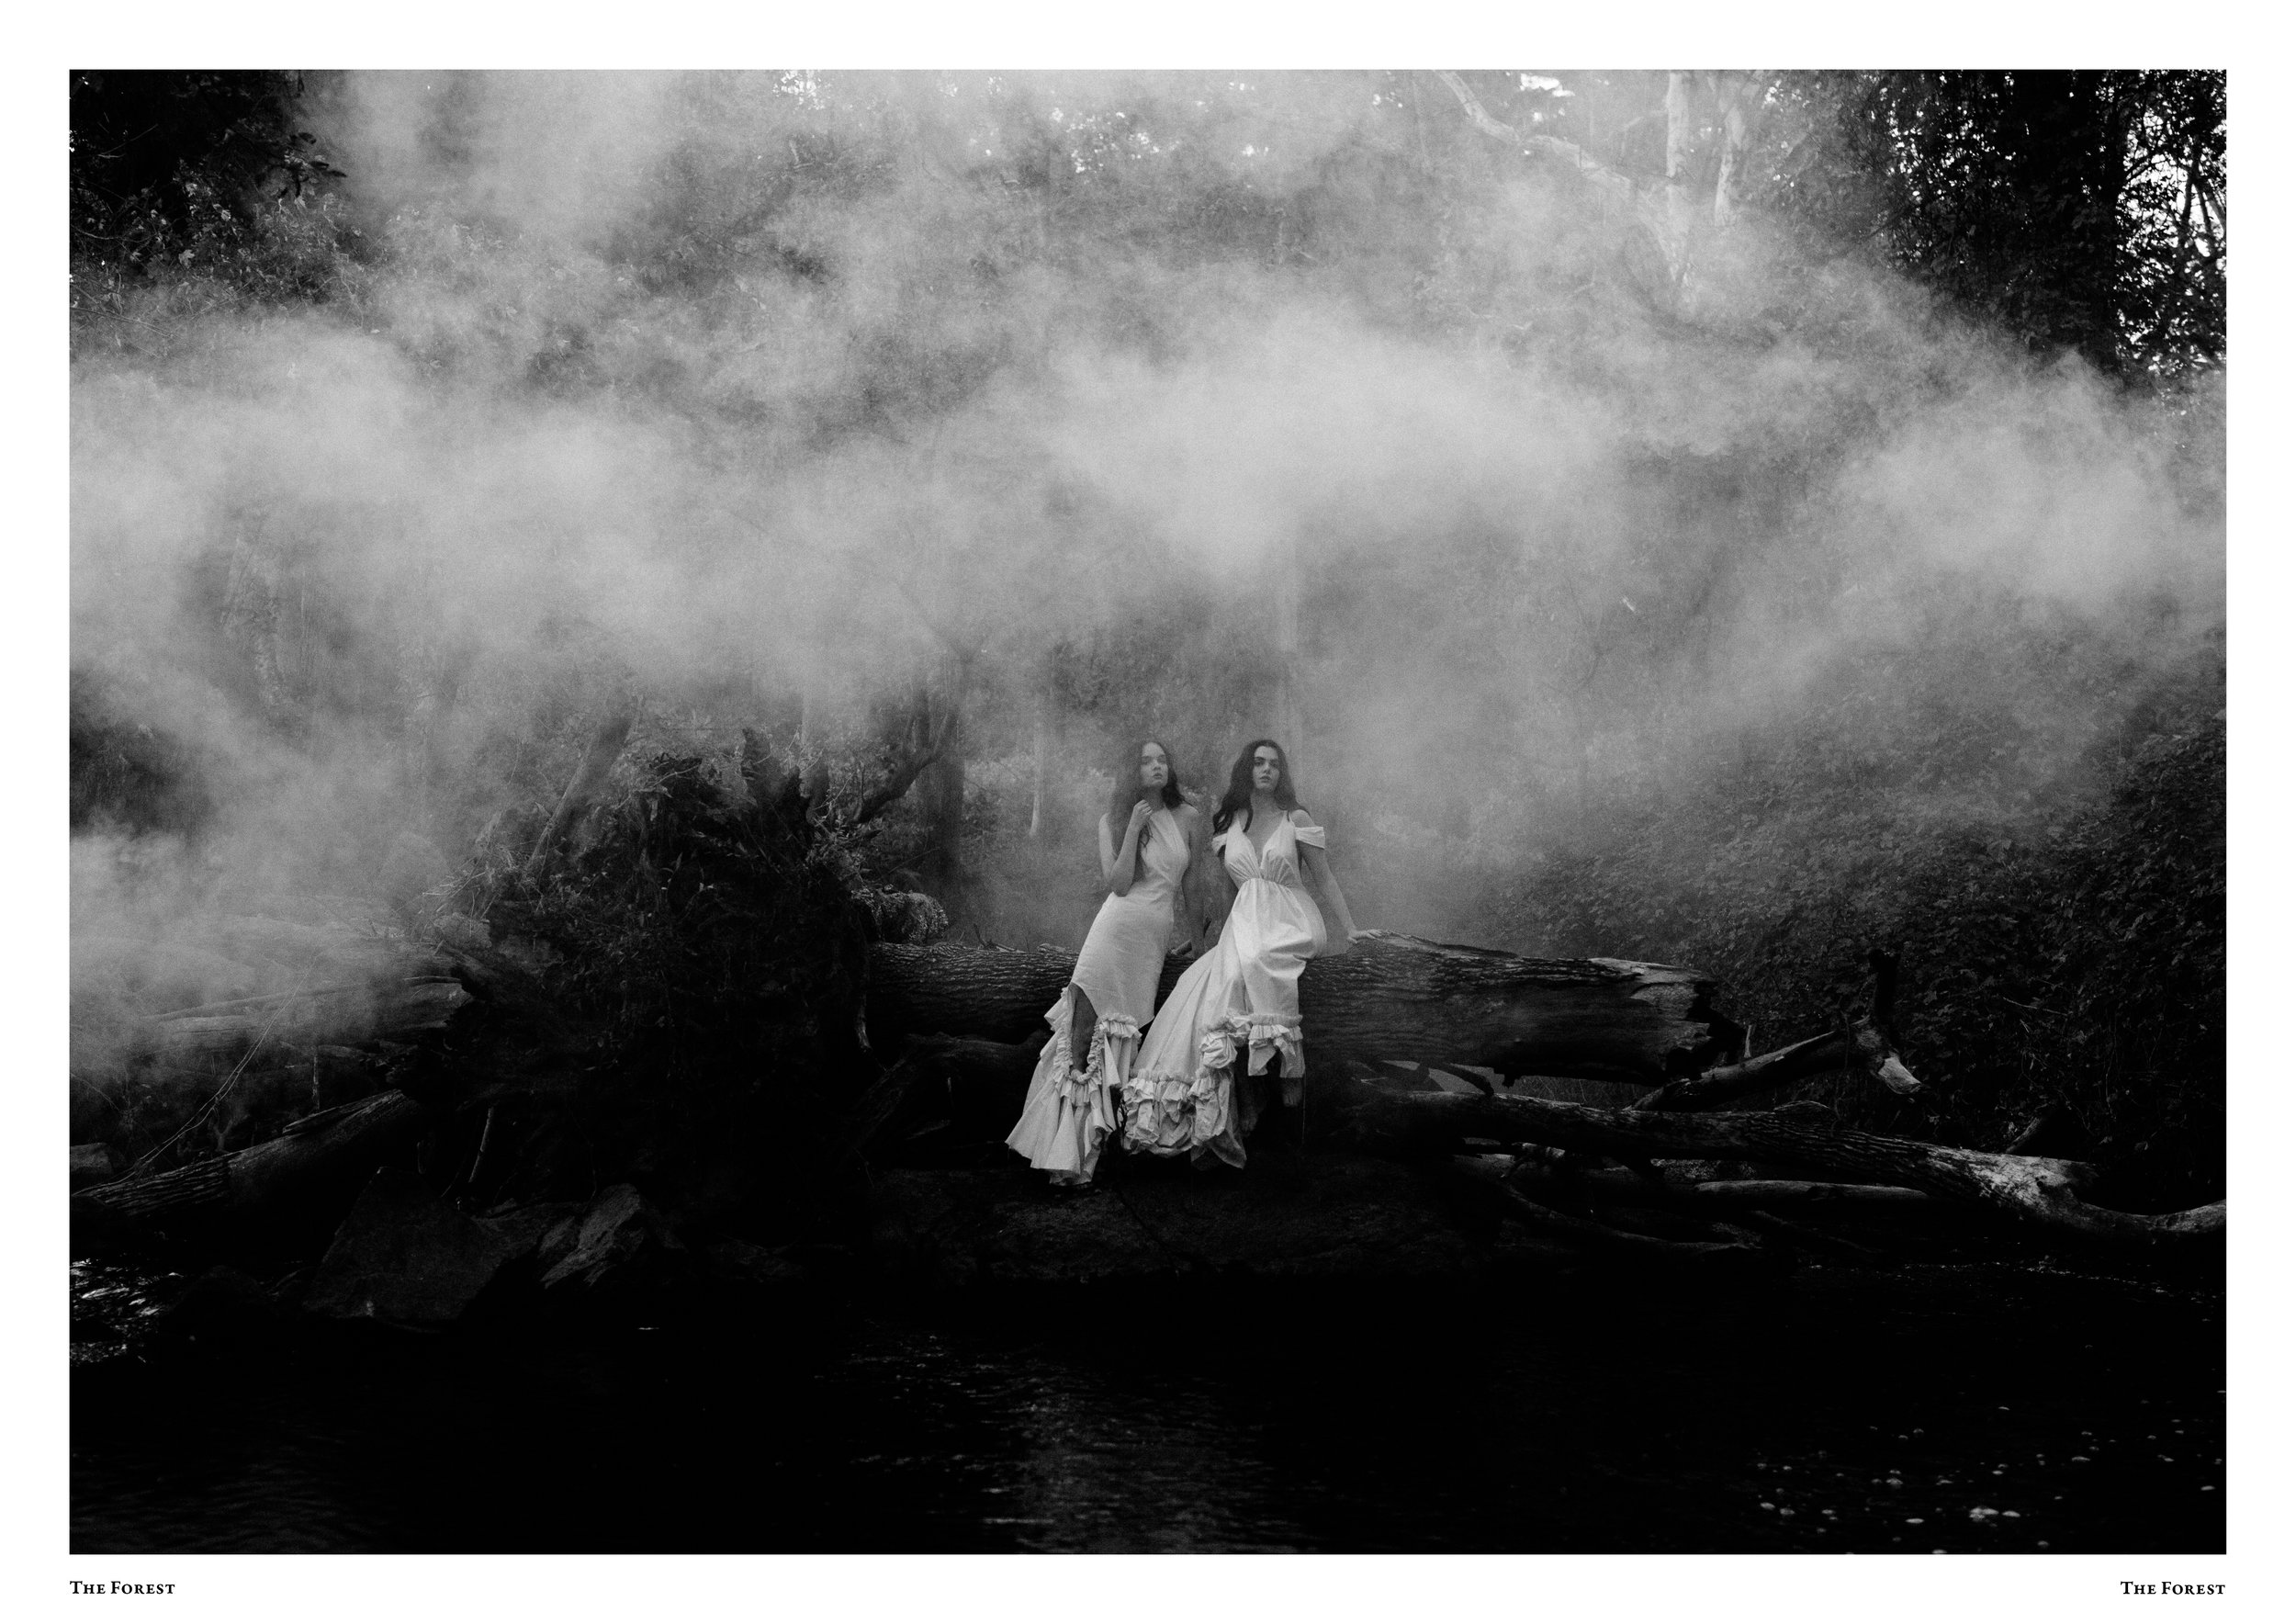 kelsey randall bepoke muslin collection spencer ostrander the forest magazine charlie howard lucia roberts